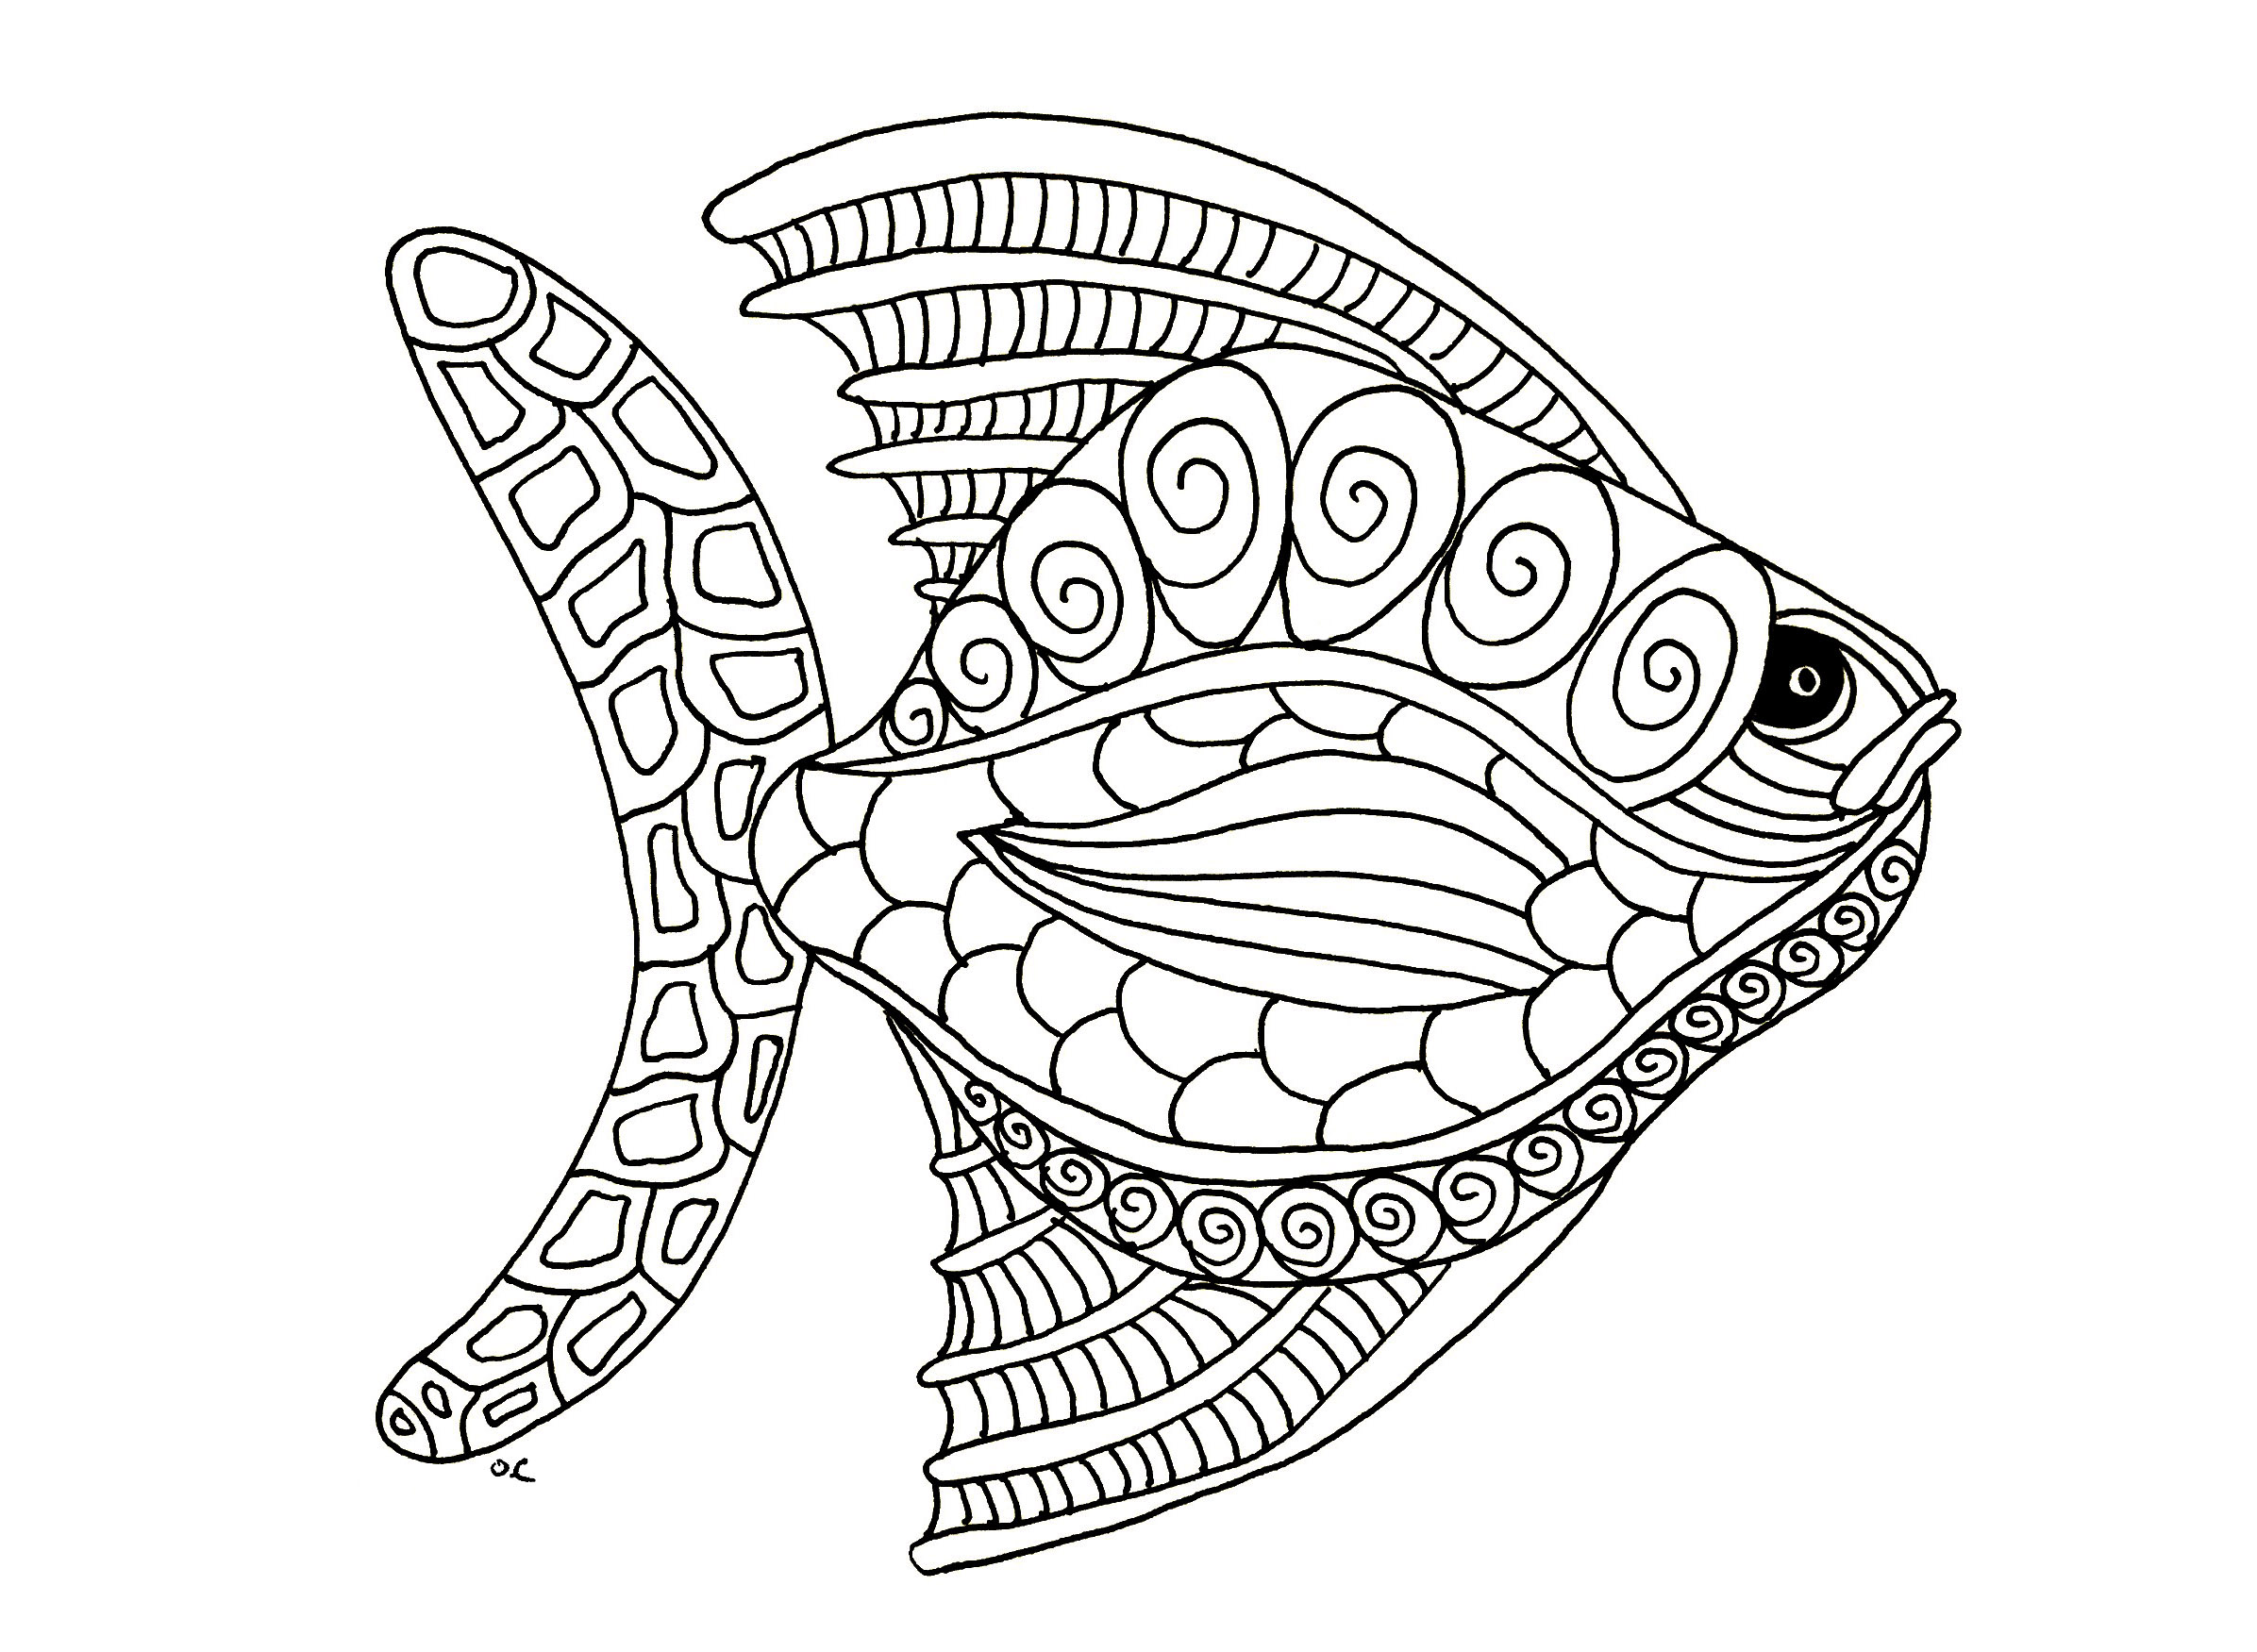 Adult Coloring Pages Animals - Best Coloring Pages For Kids | free online coloring pages for adults animals